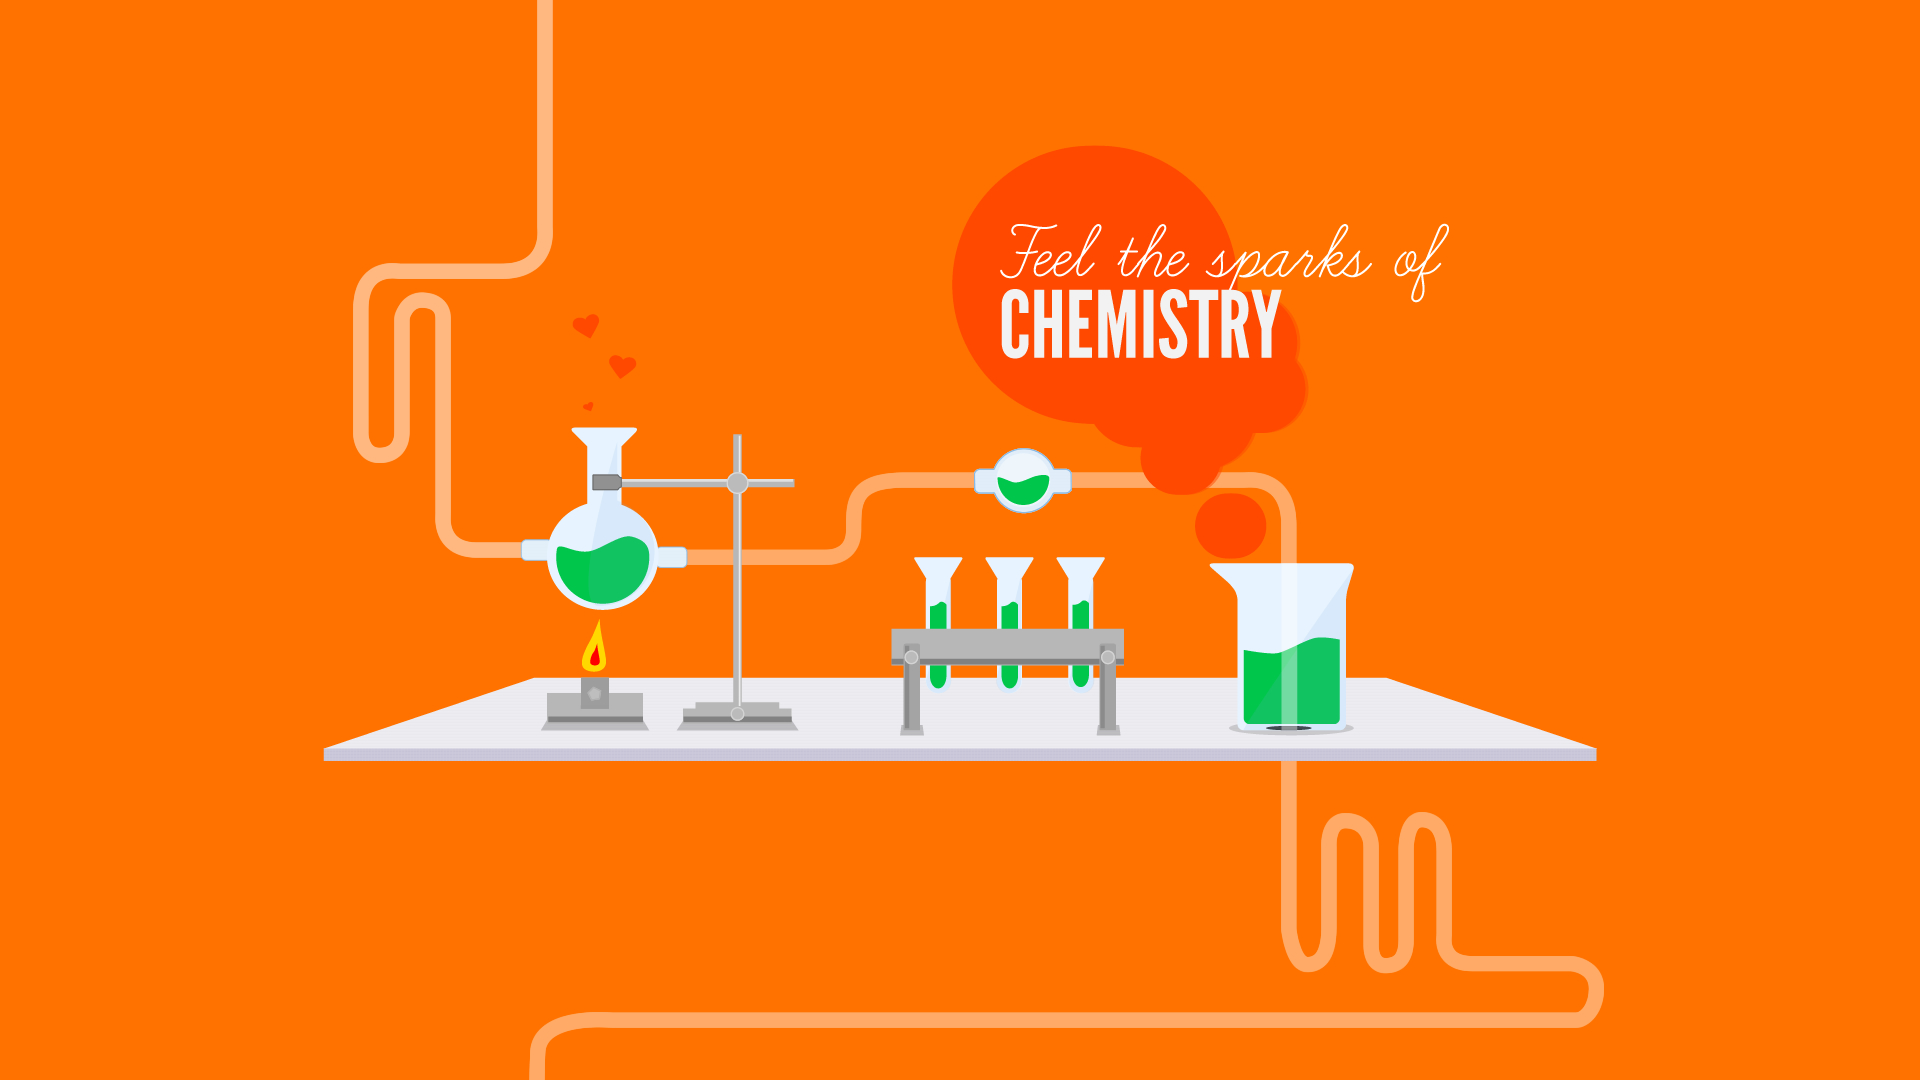 Feel-the-sparks-of-Chemistry-1920px-1080px-wallpaper-wp3605522